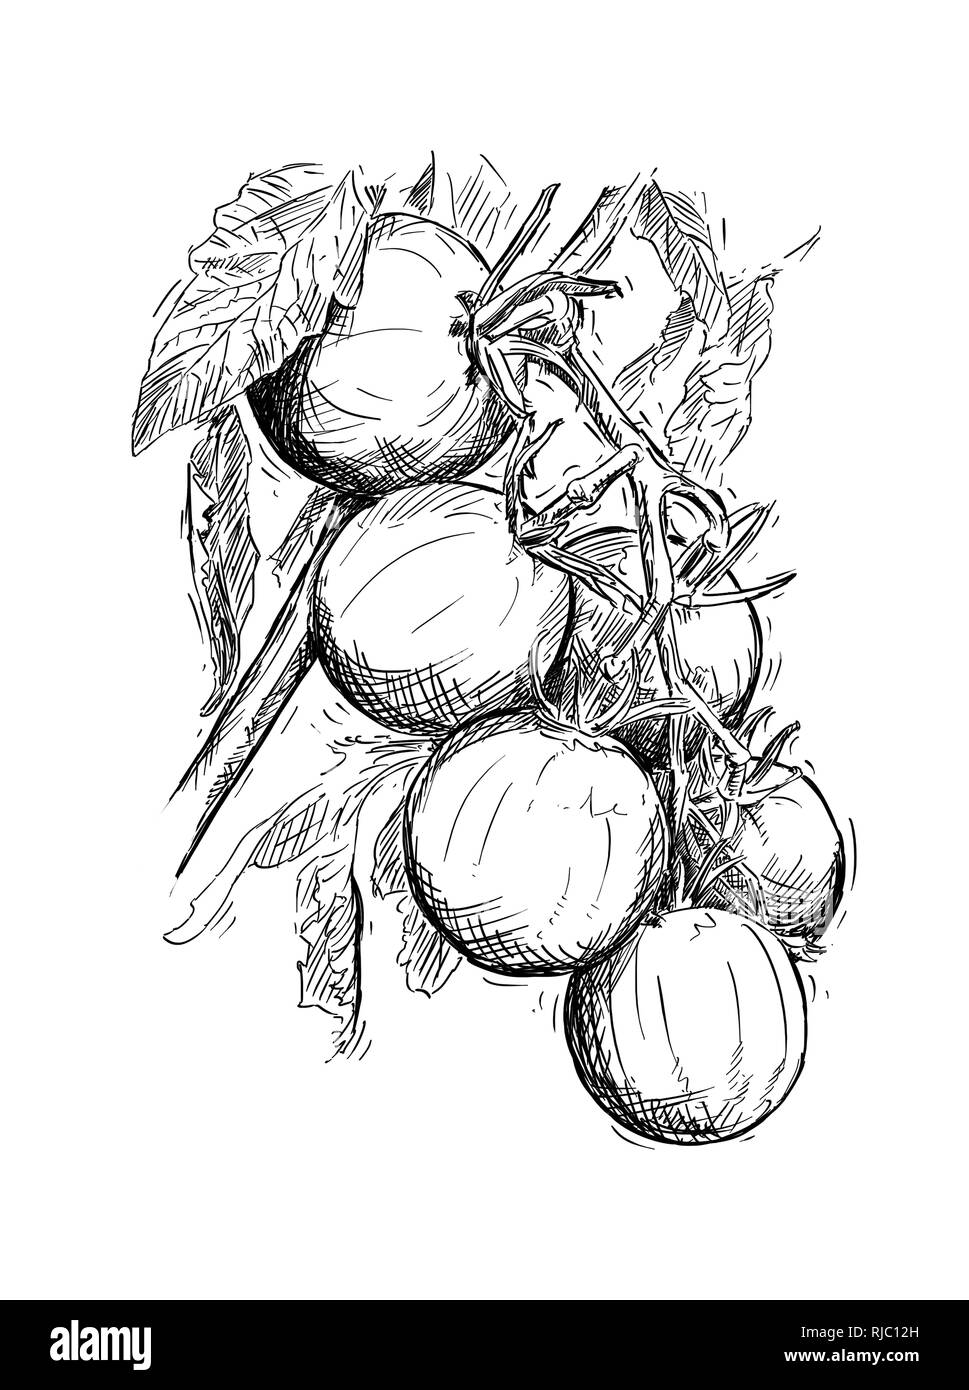 Hand Drawing of Ripe Tomatoes Growing on Branch - Stock Image